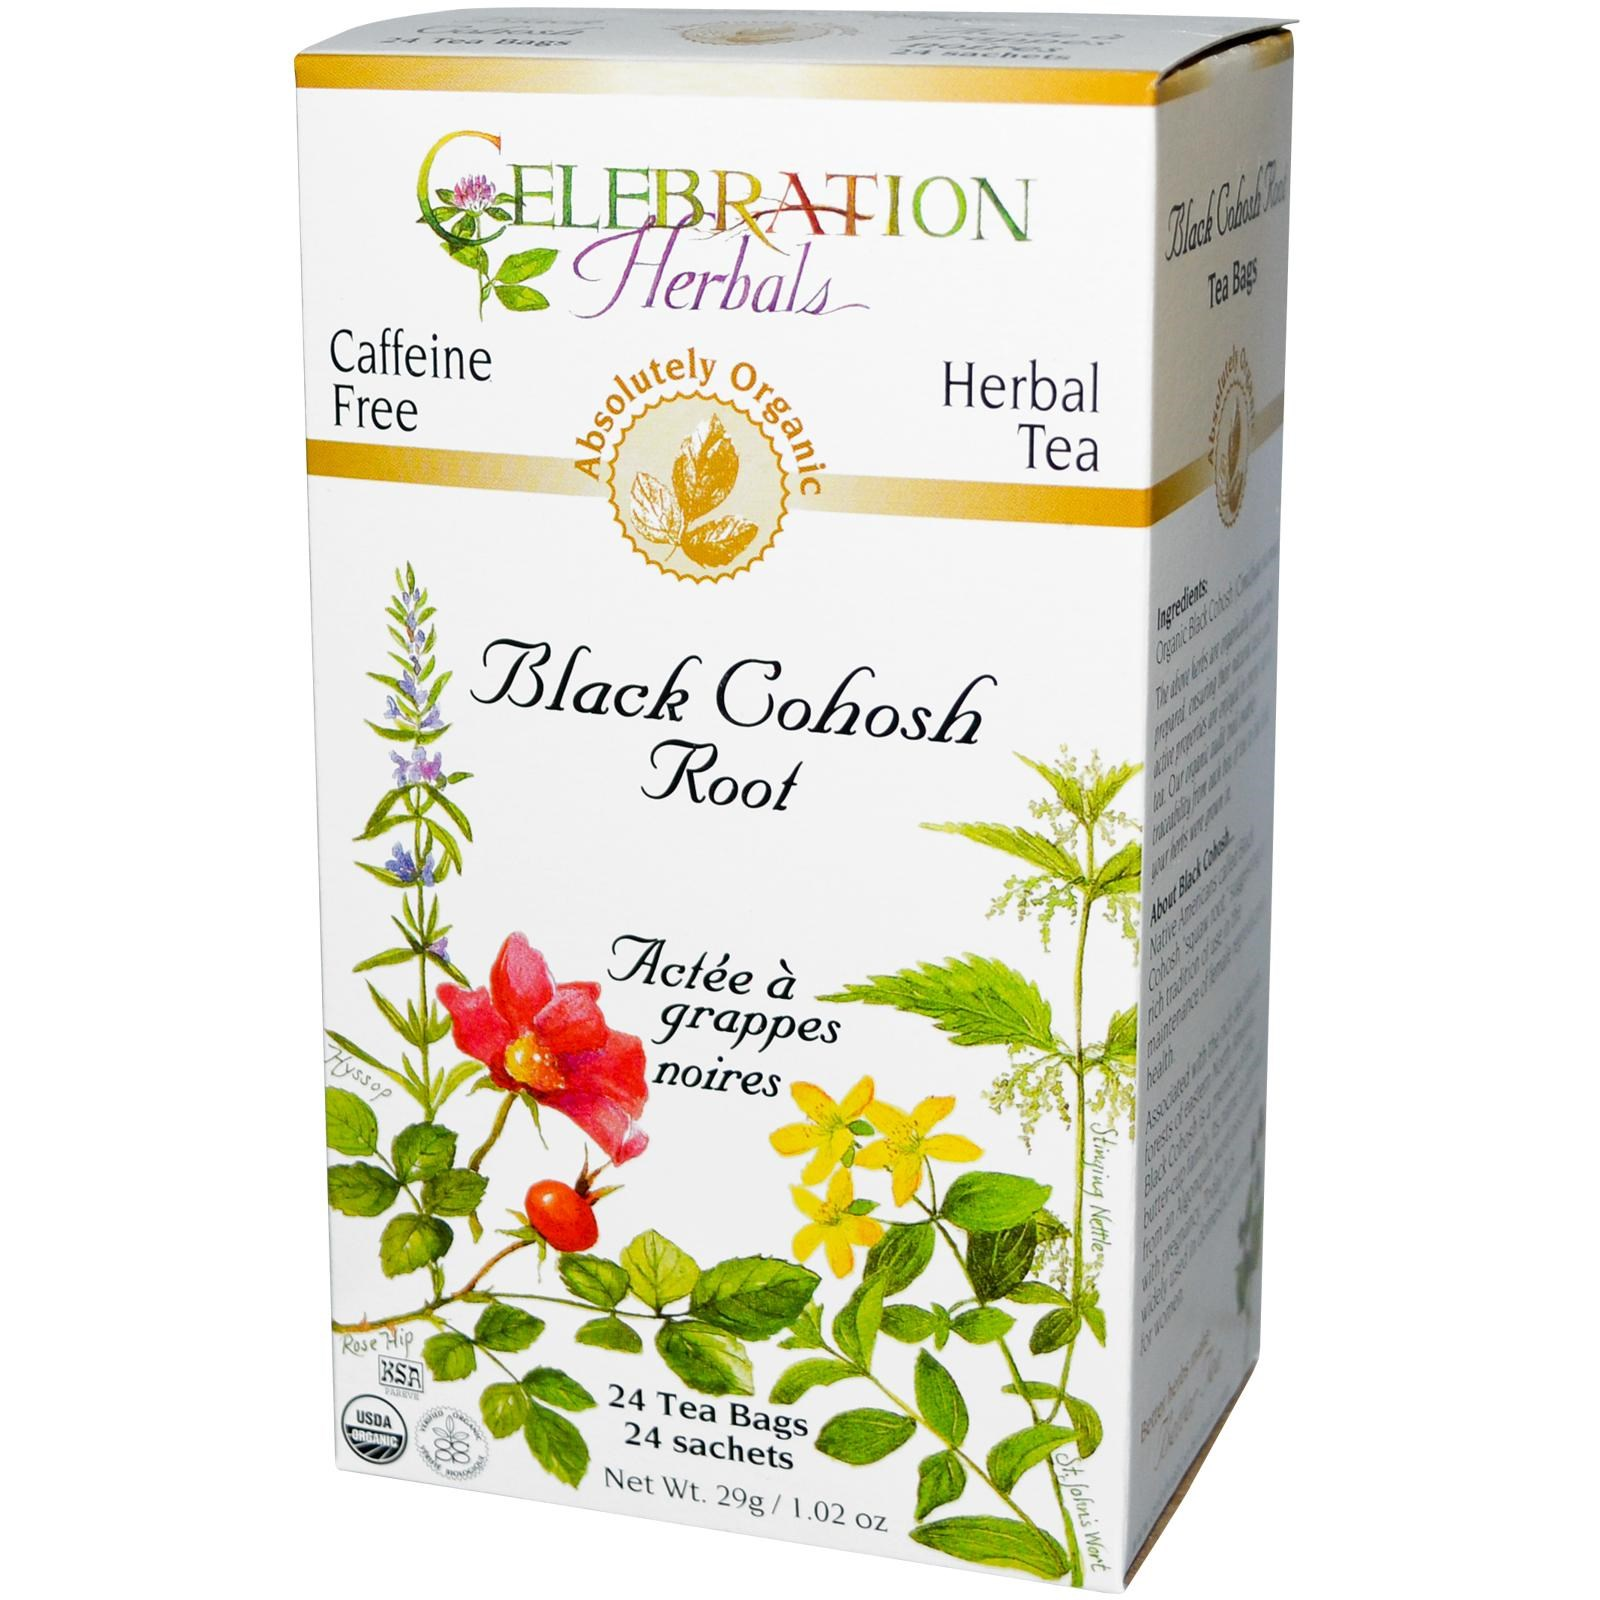 Celebration Herbals Organic Herbal Tea Caffeine Free Black Cohosh Root 24 Herbal Tea Bags